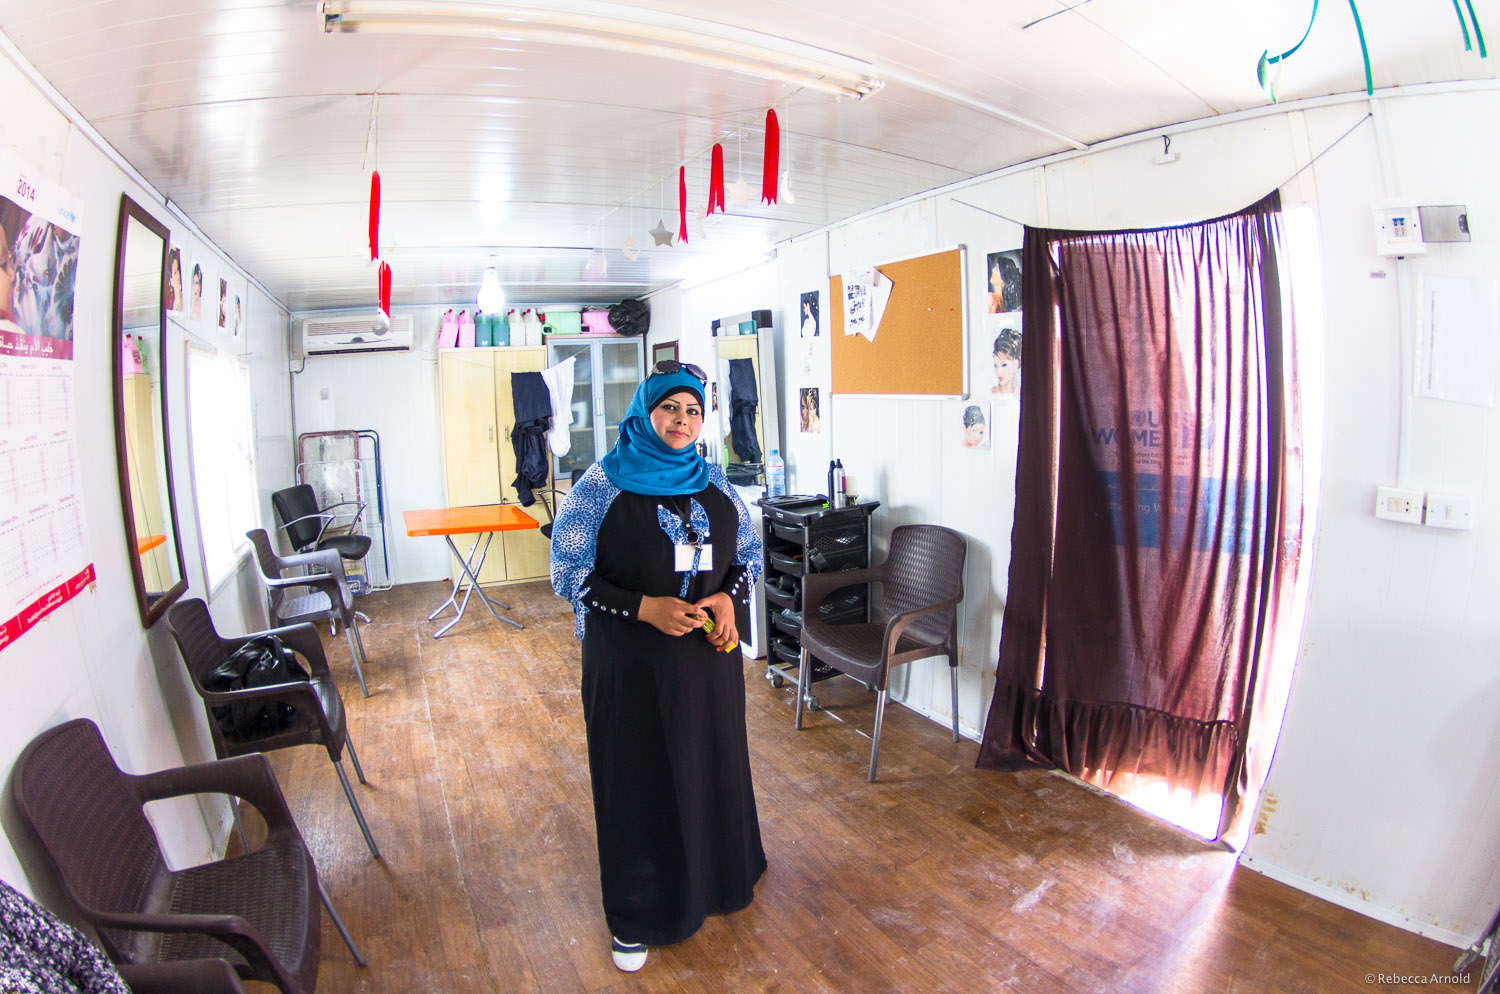 ARDD-Legal Aid partners with UNWomen on the  Oasis Project . Creating a safe space and get skills training for Syrian women, like this hair salon.  Zaatari Refugee Camp, Jordan